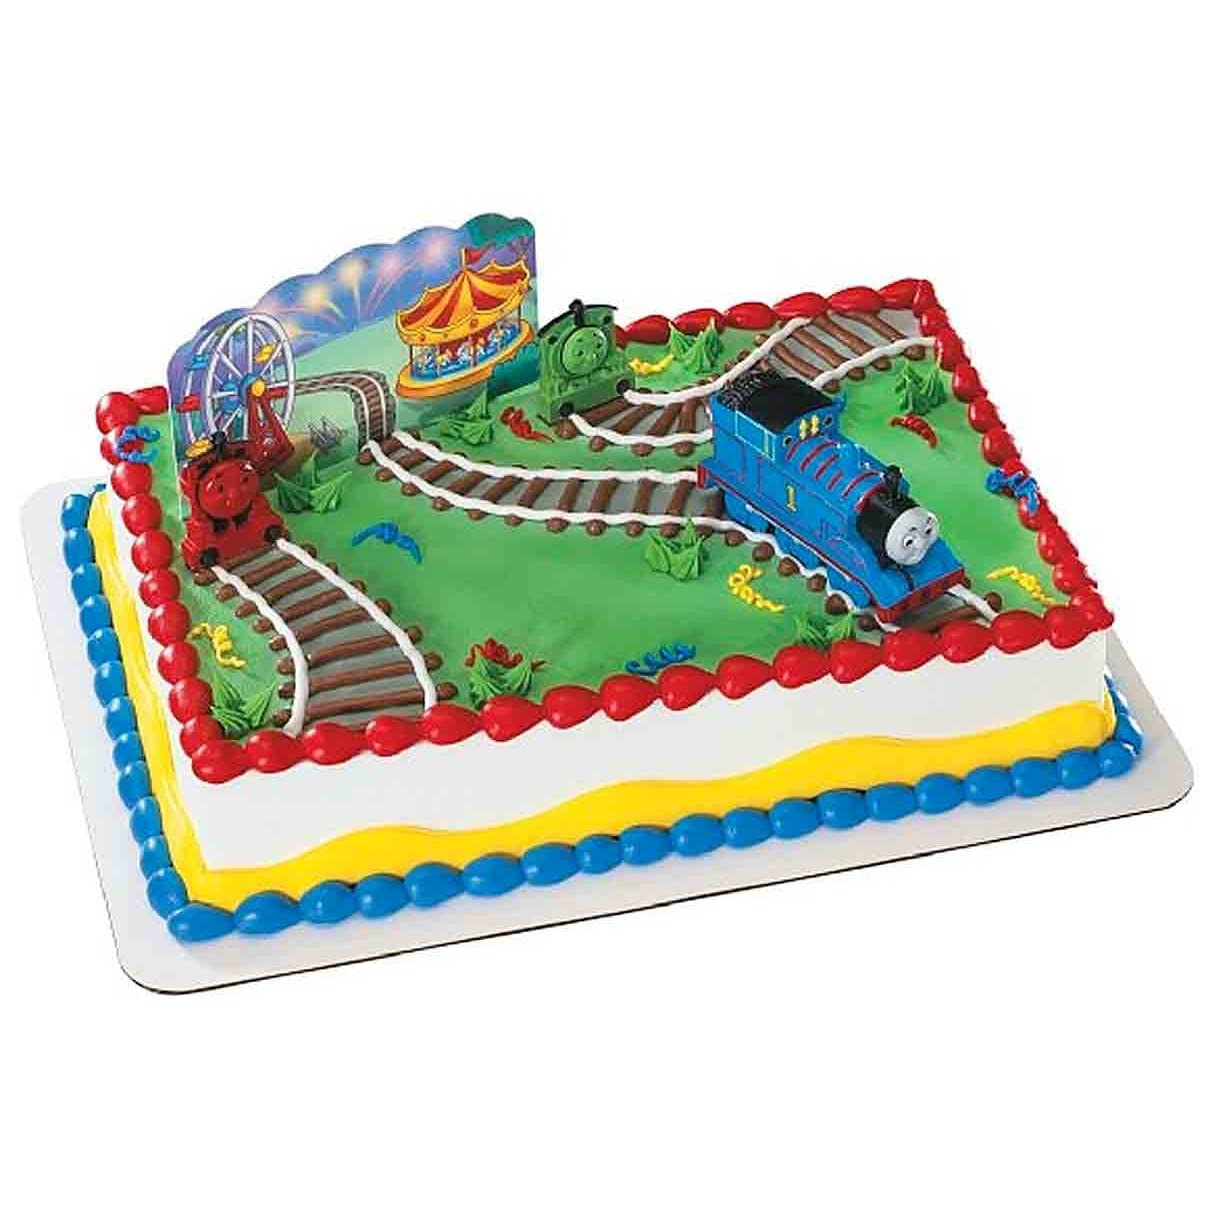 Thomas Tank Engine Cake Decoration Kit : Thomas Train Cake Decorations Car Interior Design